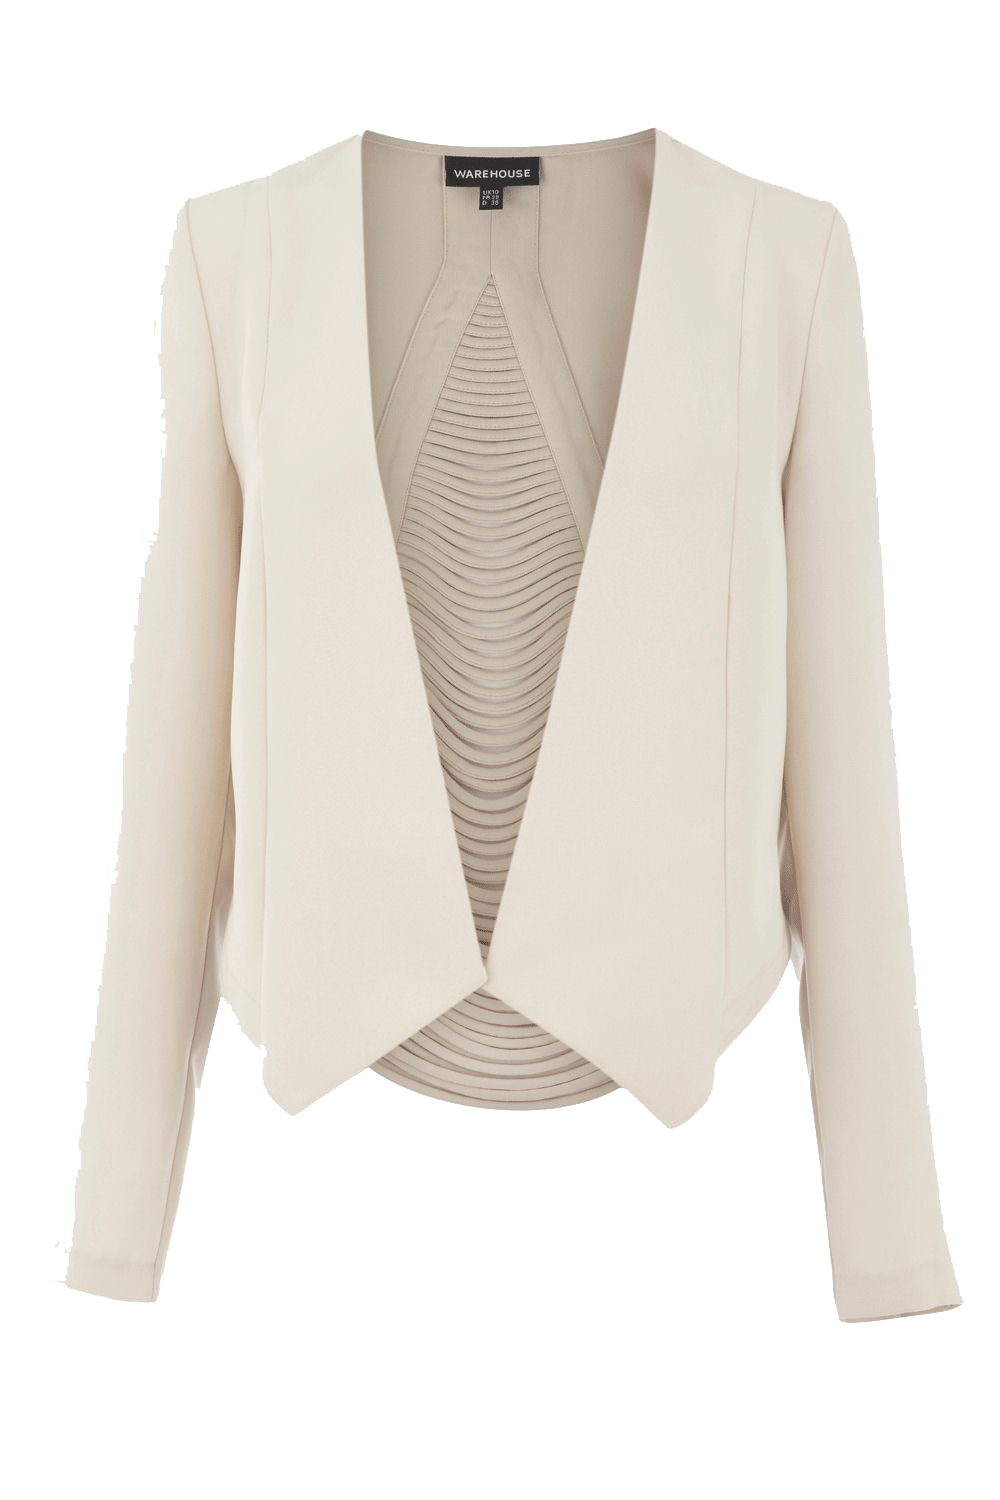 Blazer Png - Blazer Png Picture PNG Image